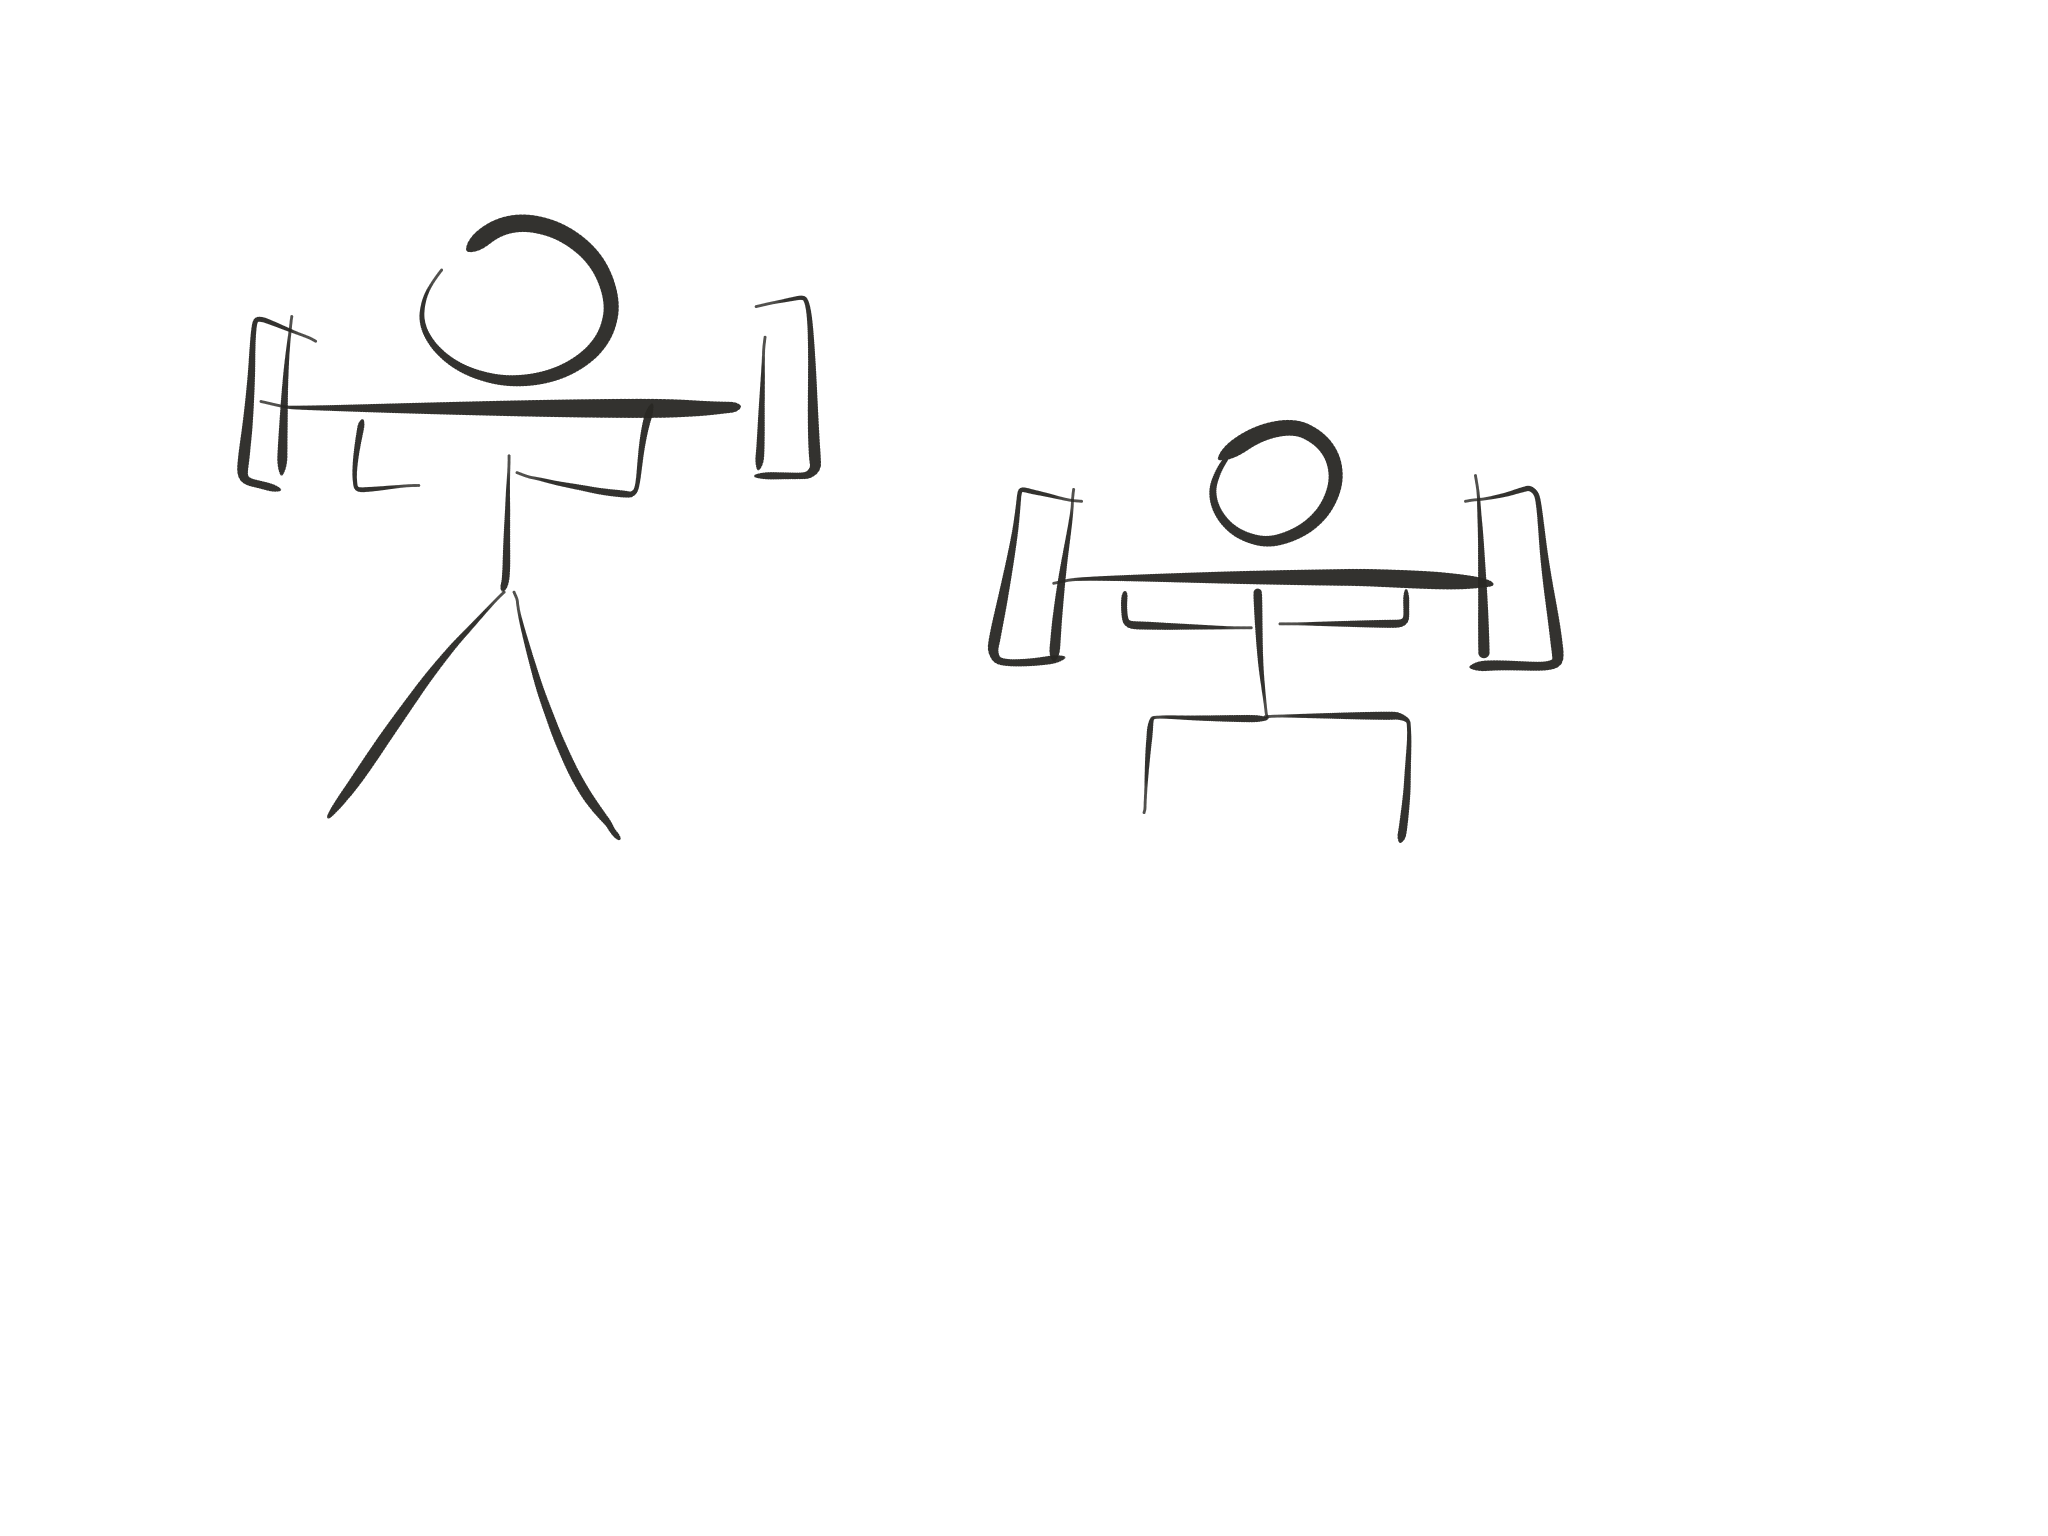 Stick figure diagram, barbell back squat